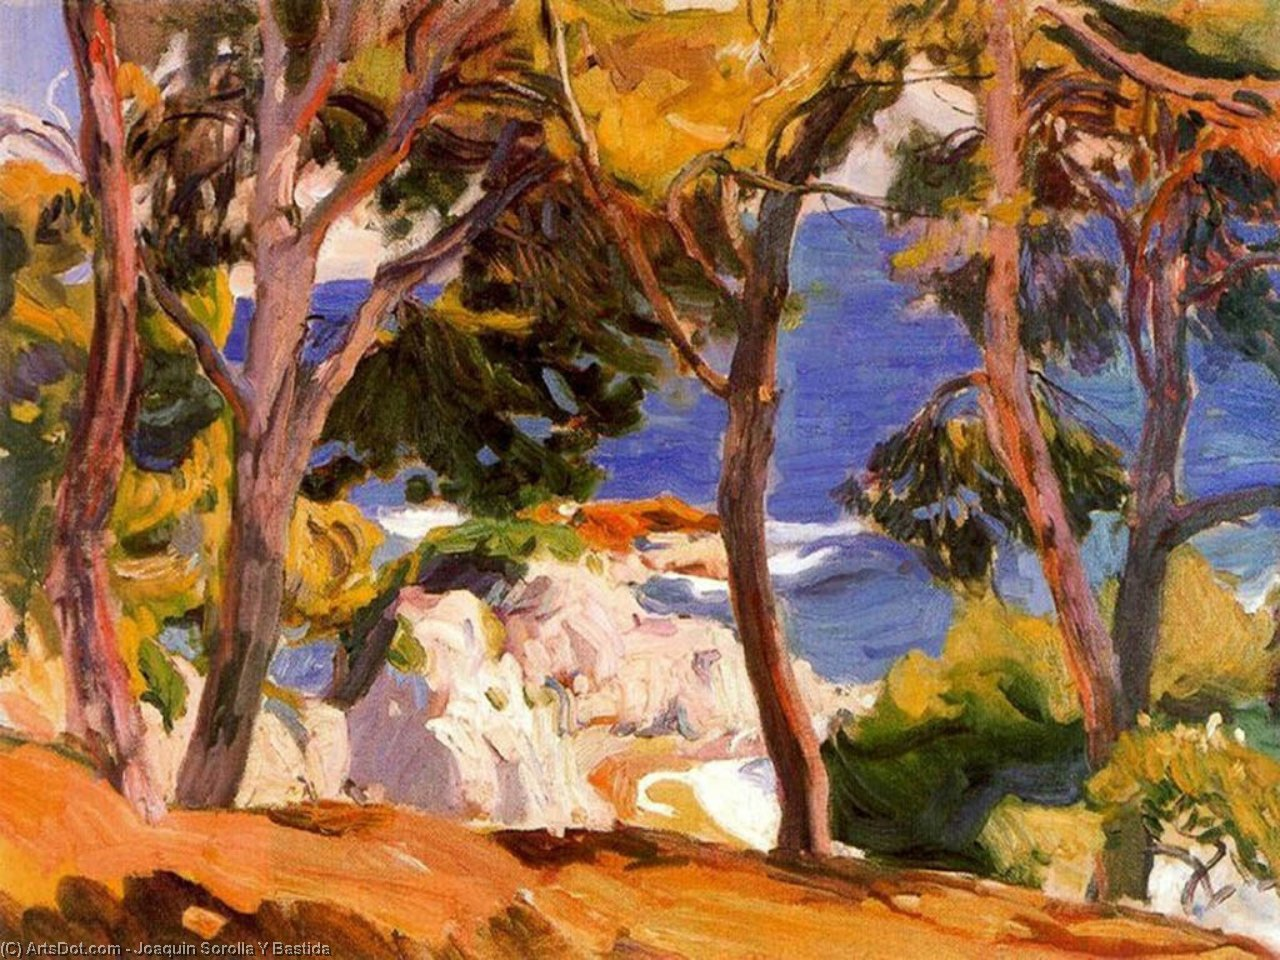 Coast at Santa Cristina, Oil On Canvas by Joaquin Sorolla Y Bastida (1863-1923, Spain)